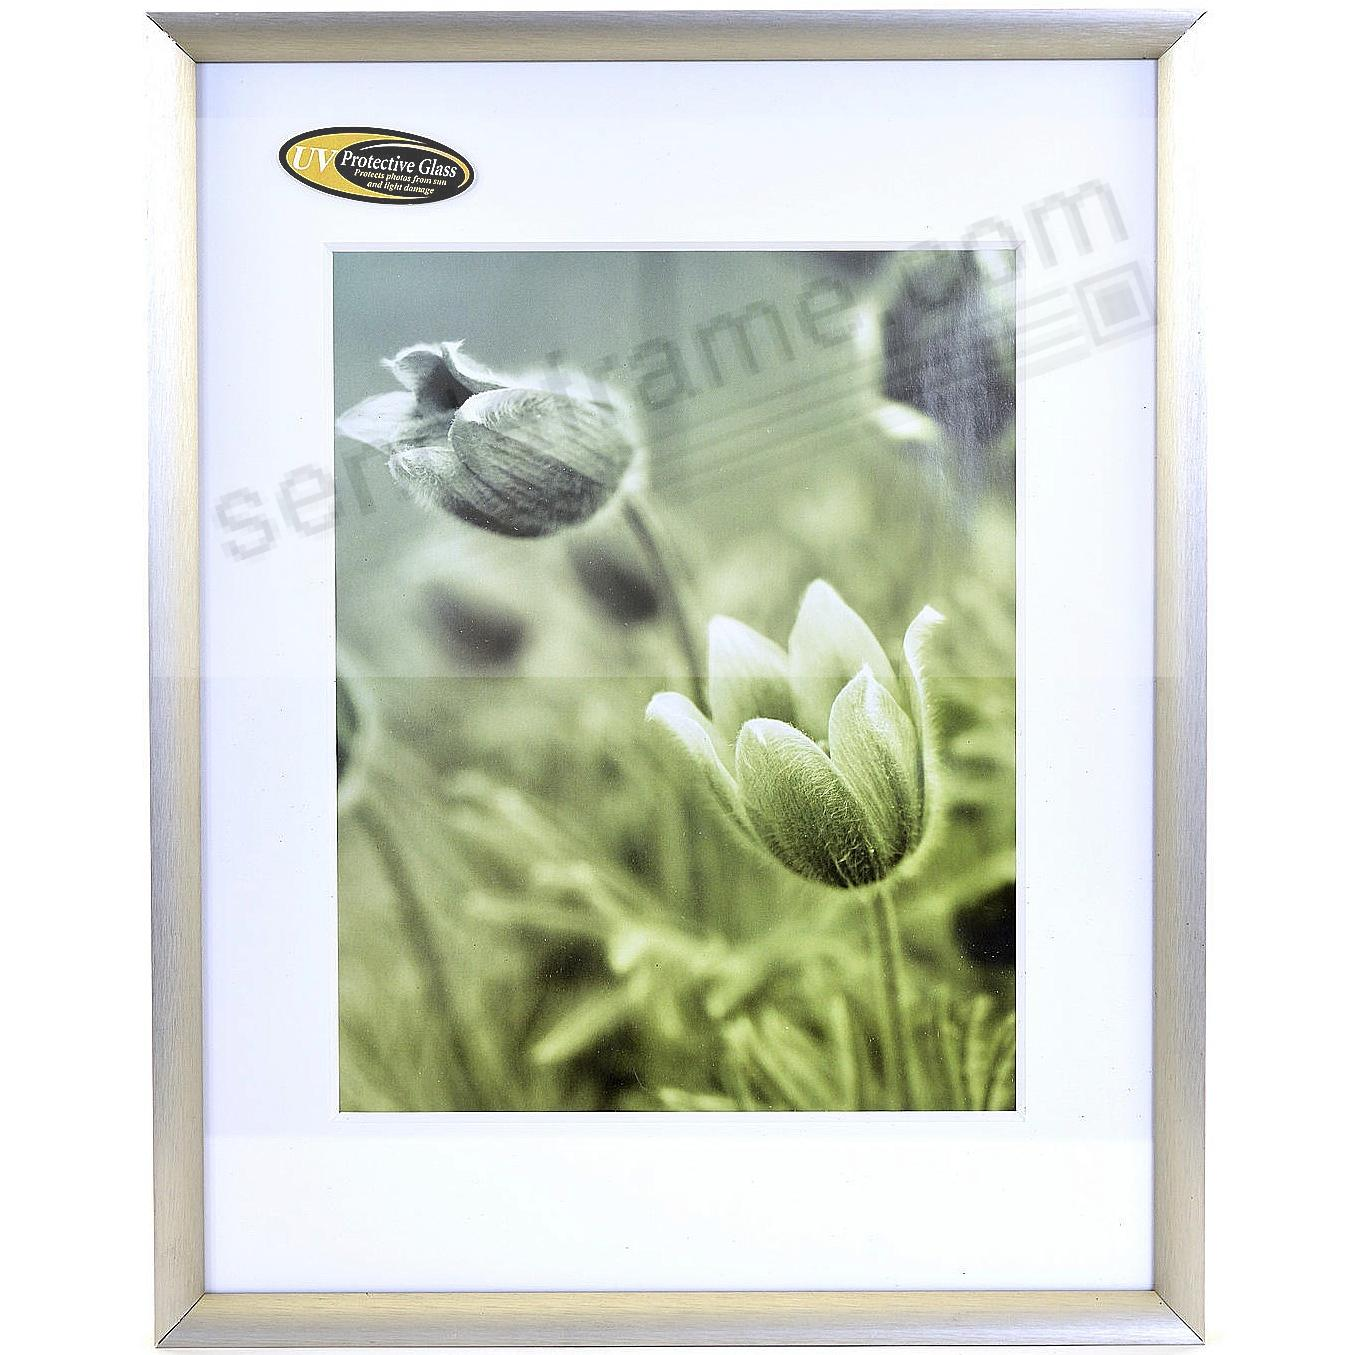 Satin German Silver COSMOPOLITAN matted metallic frame 11x14/8x10 from ARTCARE® by Nielsen®